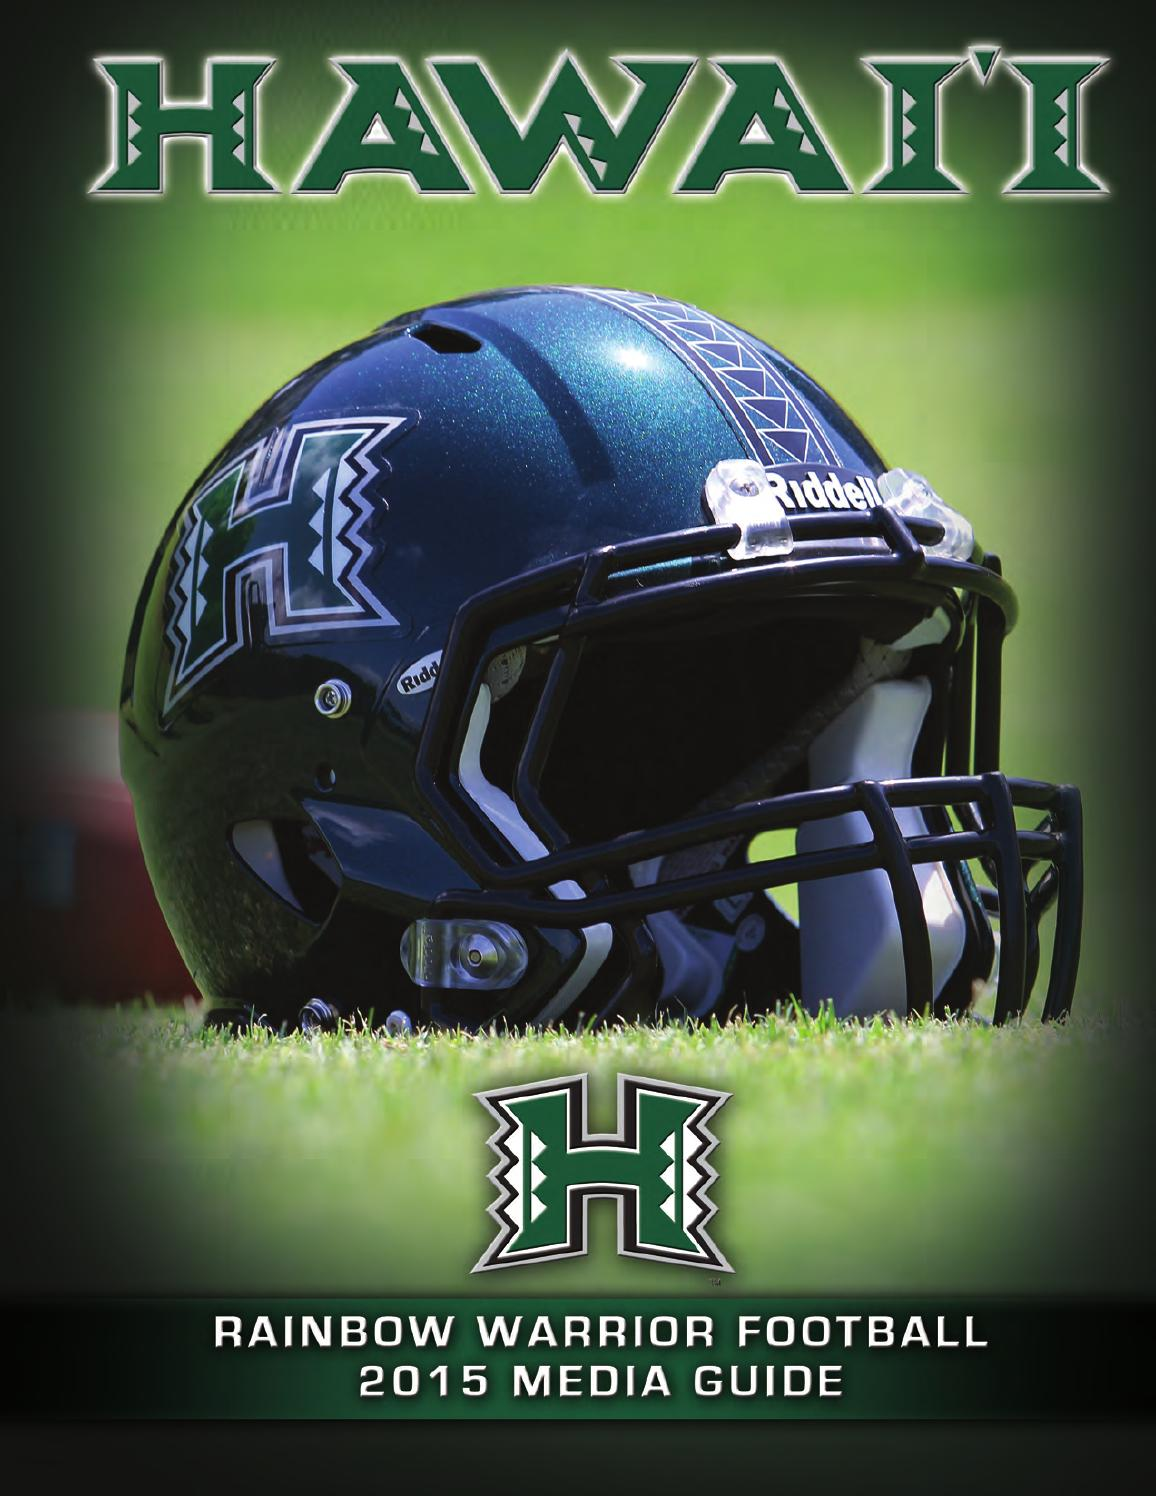 2015 Rainbow Warrior Football Media Guide by hawaiiathletics1  hawaiiathletics1 - issuu 19d231f84